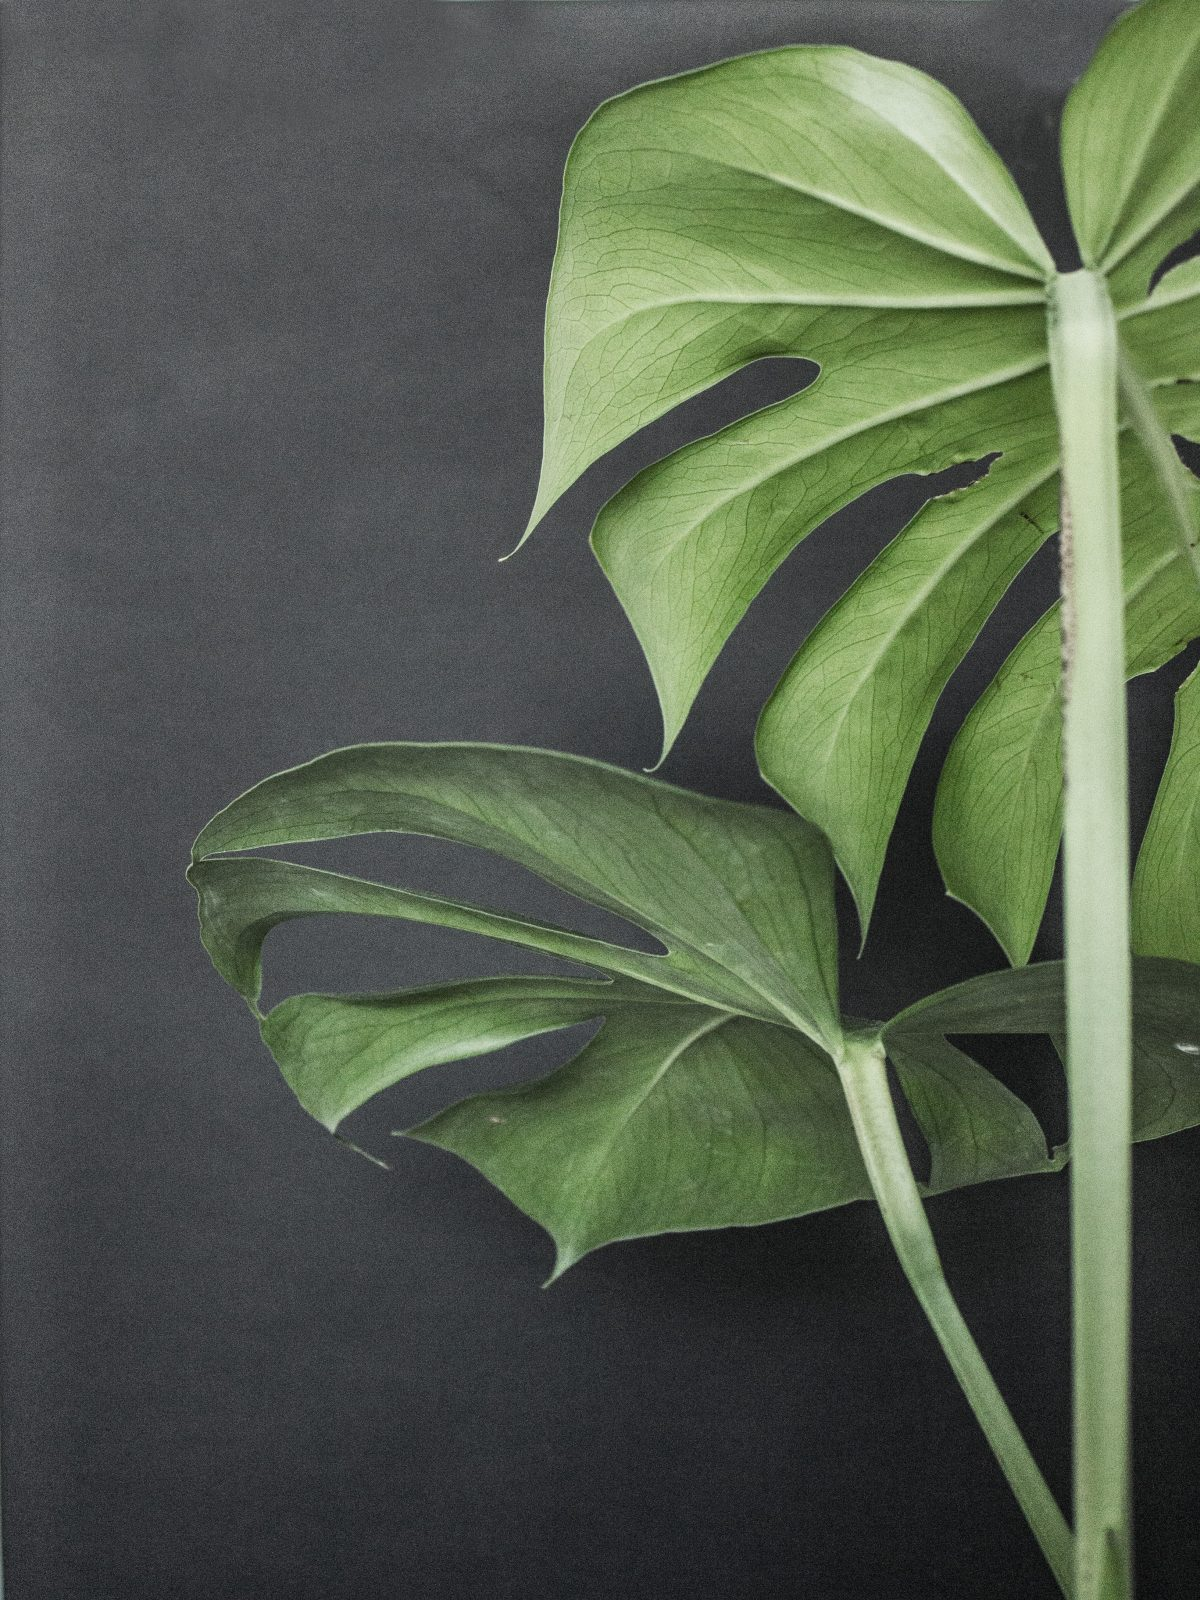 Indoor Plants For The Office 7 Splendid Reasons To Have Indoor Plants In Your Home And Office